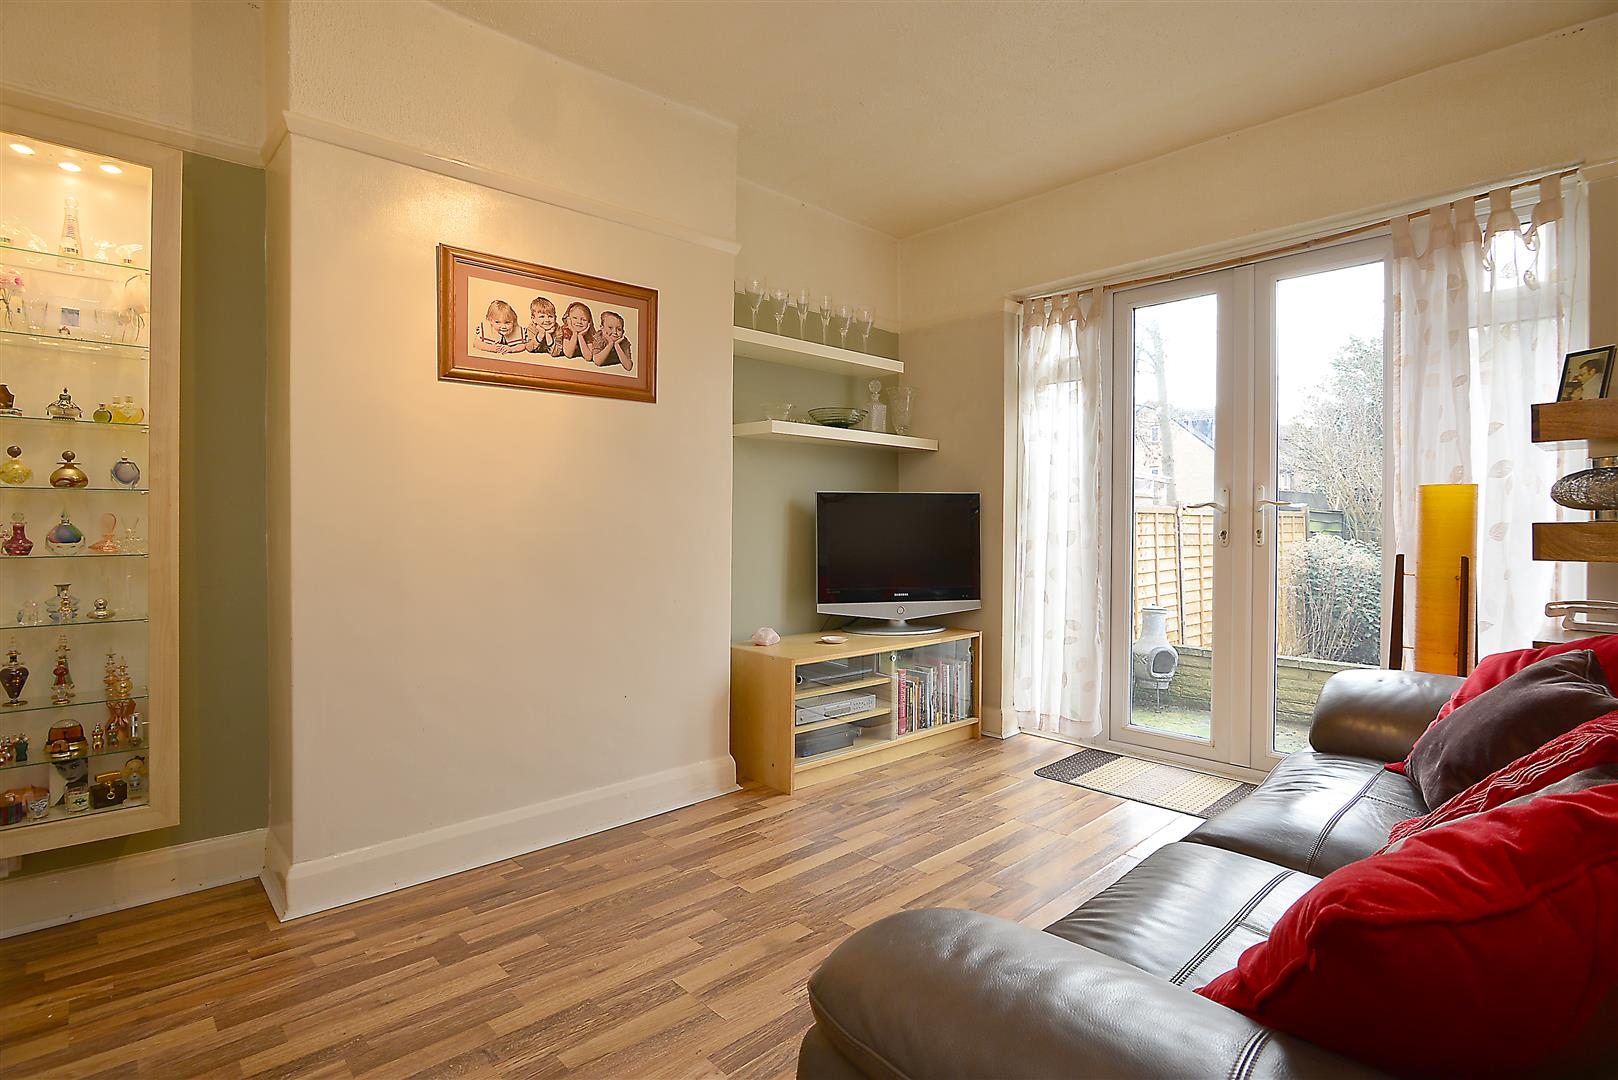 Runnymede, Colliers Wood, SW19